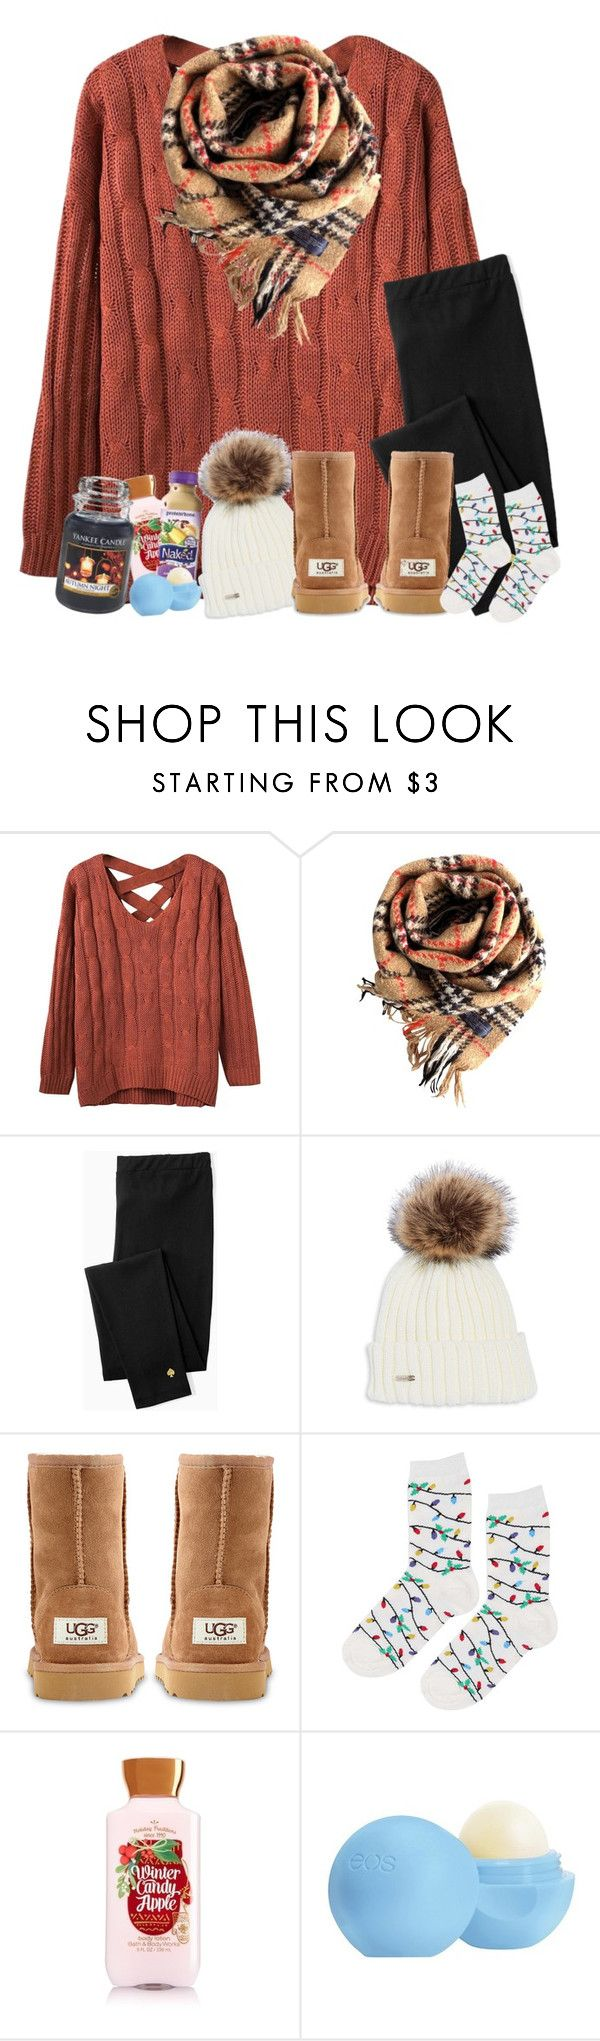 """The best way to spread Christmas cheer is singing loud for all to hear"" by tinyblueowls ❤ liked on Polyvore featuring Burberry, Kate Spade, UGG Australia, Topshop, Zone, Eos and Yankee Candle"